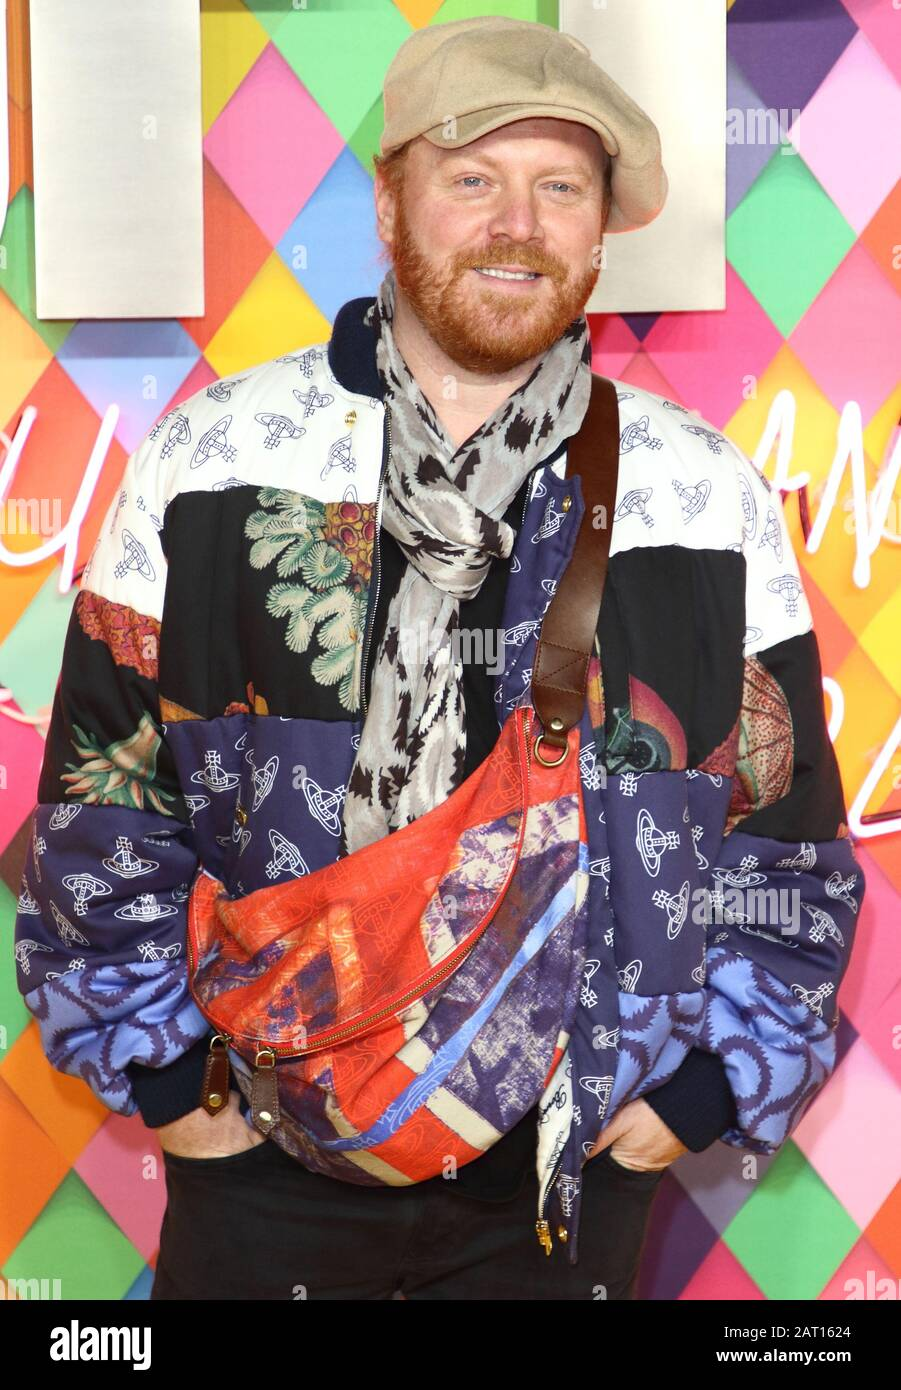 London, UK. 29th Jan, 2020. Leigh Francis at the World Premiere of 'Birds of Prey: And the Fantabulous Emancipation of One Harley Quinn' held at the Odeon BFI IMAX Waterloo Credit: SOPA Images Limited/Alamy Live News Stock Photo